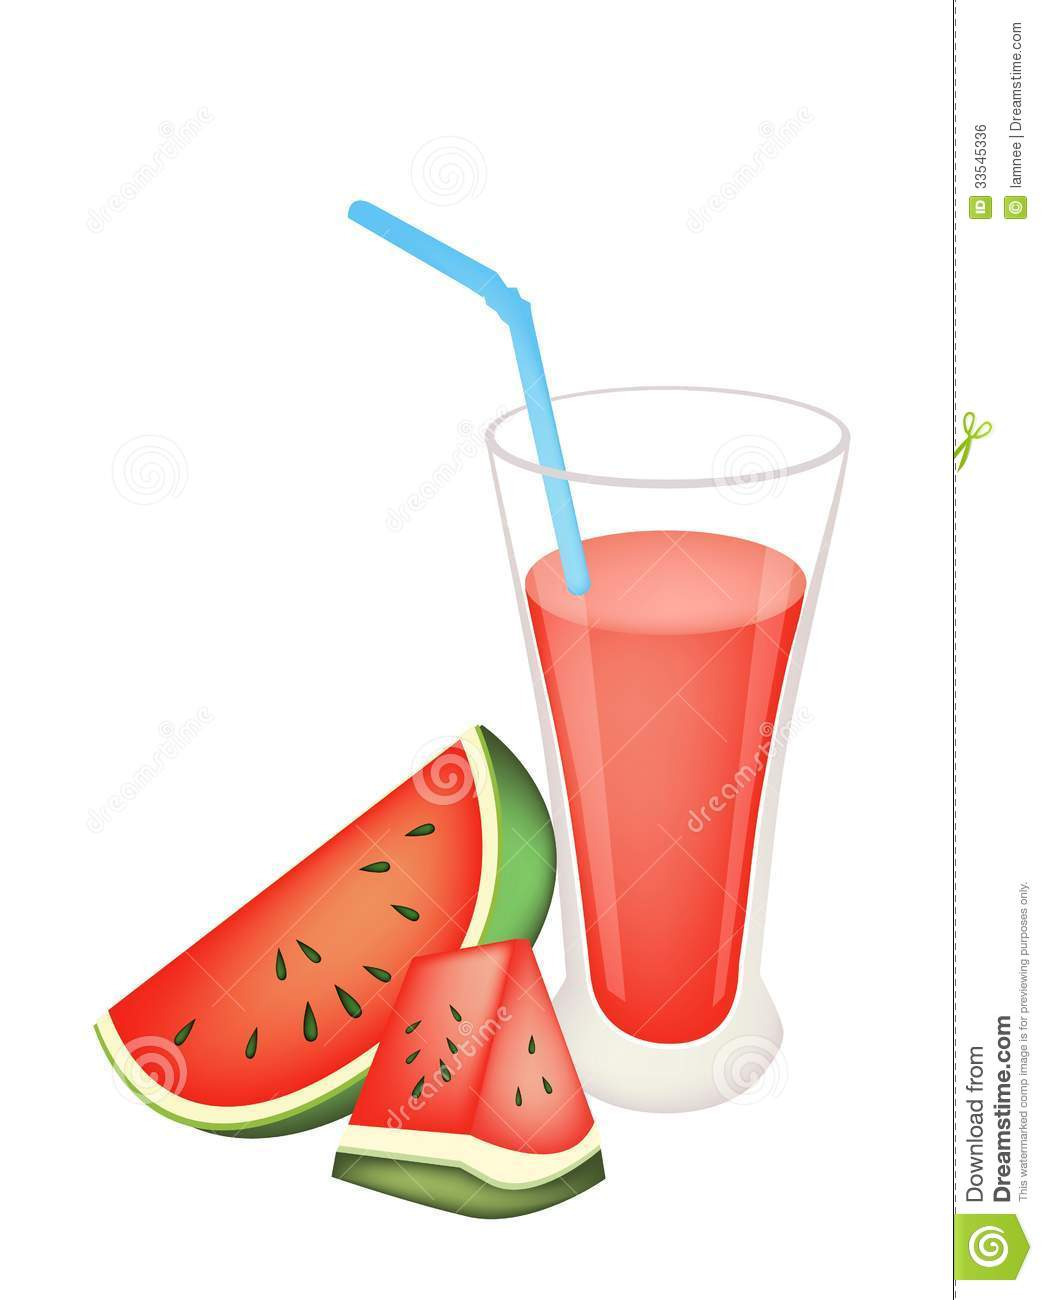 ... Juice And Watermelon Fruit Royalty Free Stock Image - Image: 33545336